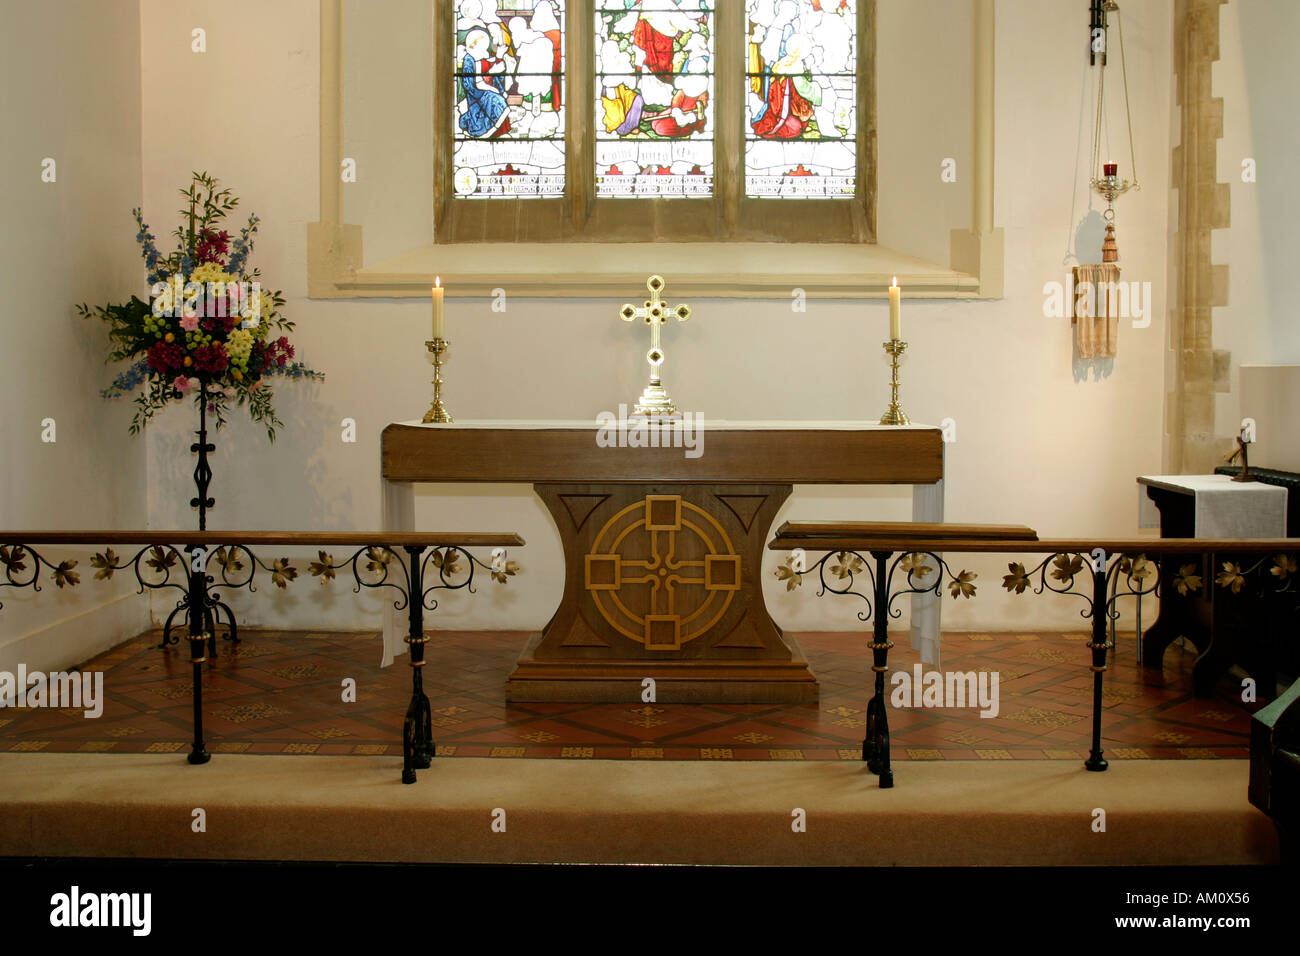 communion table in st catwg s church pentyrch cardiff suburbs south